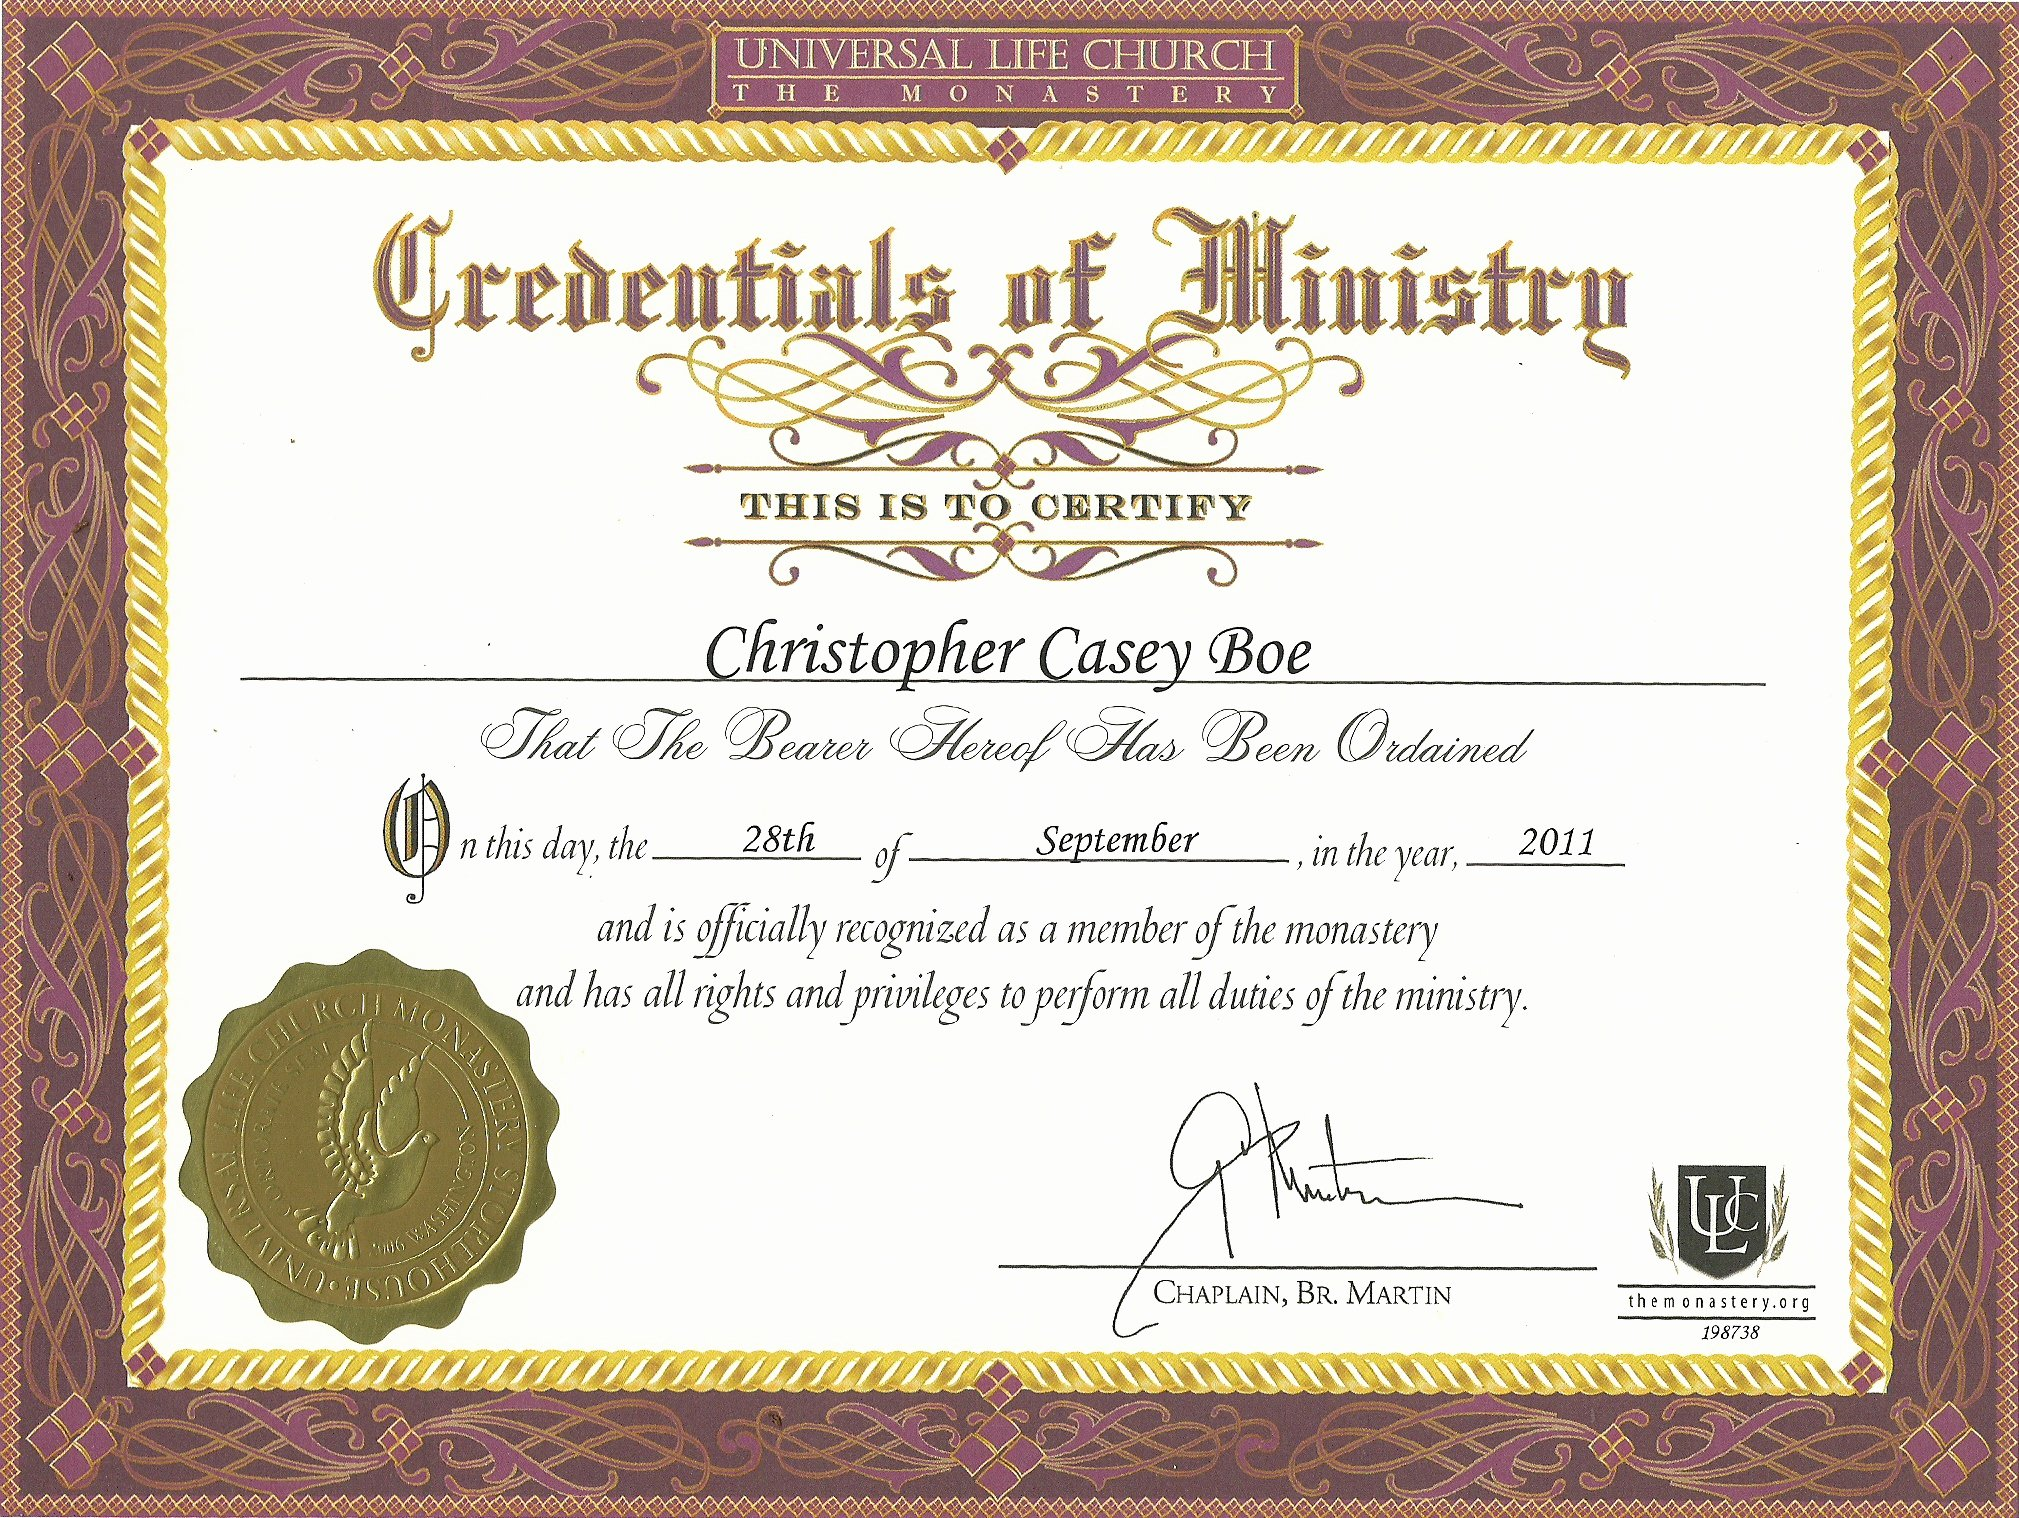 Ordained Minister Certificate Template Elegant Credentials Of Ministry